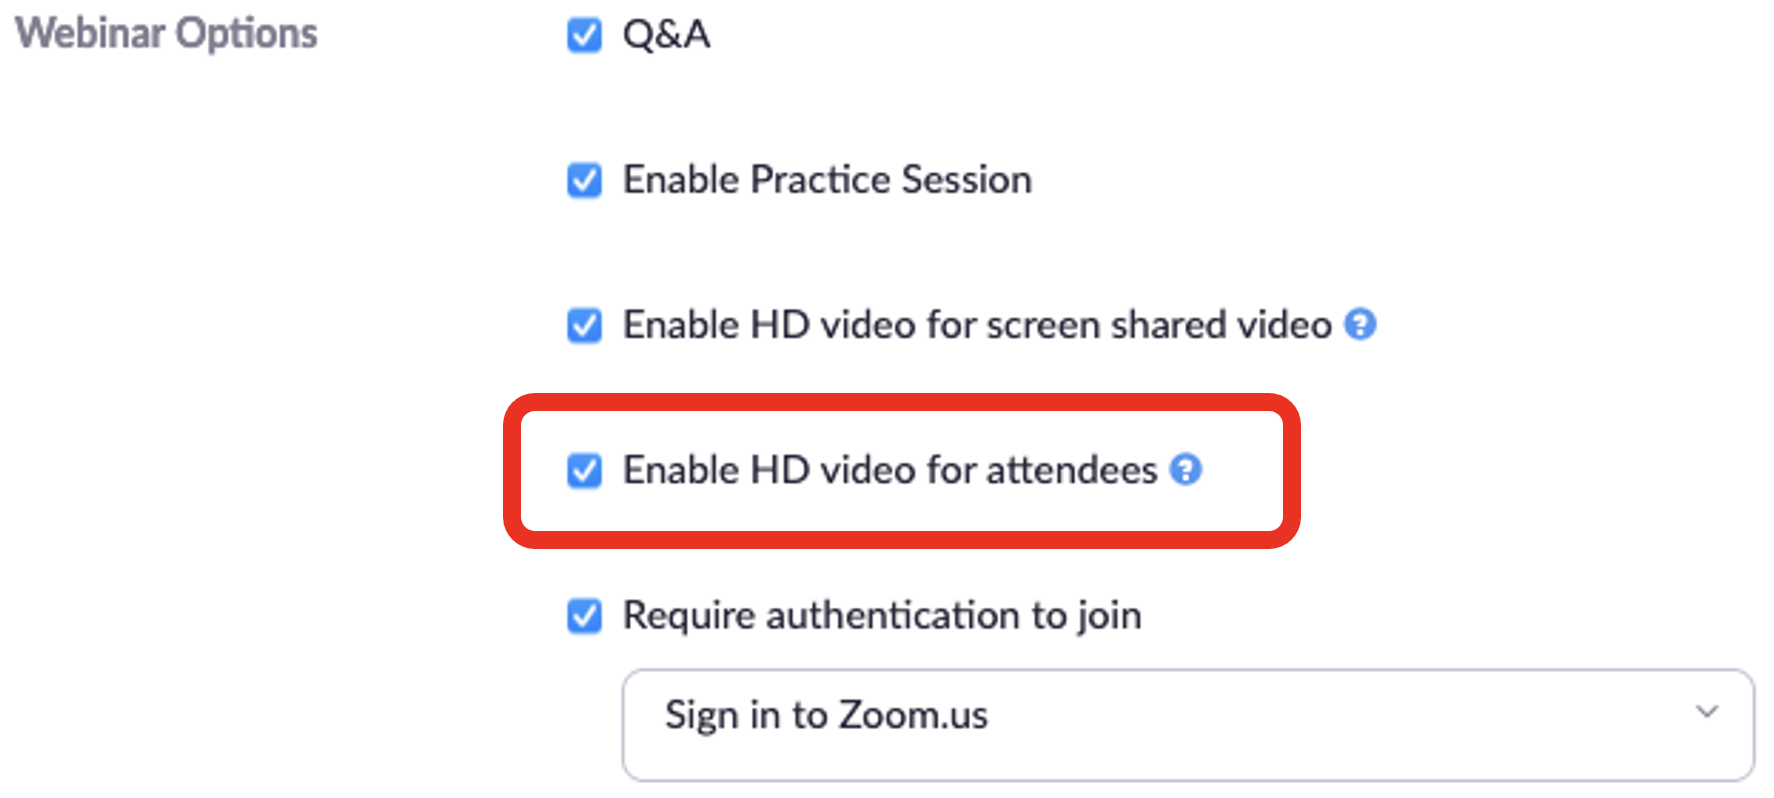 This image shows the Enable HD video for attendees setting the webinar options sub section.  This new setting can be found below Enable HD video for screen shared video and above, require authentication to join.